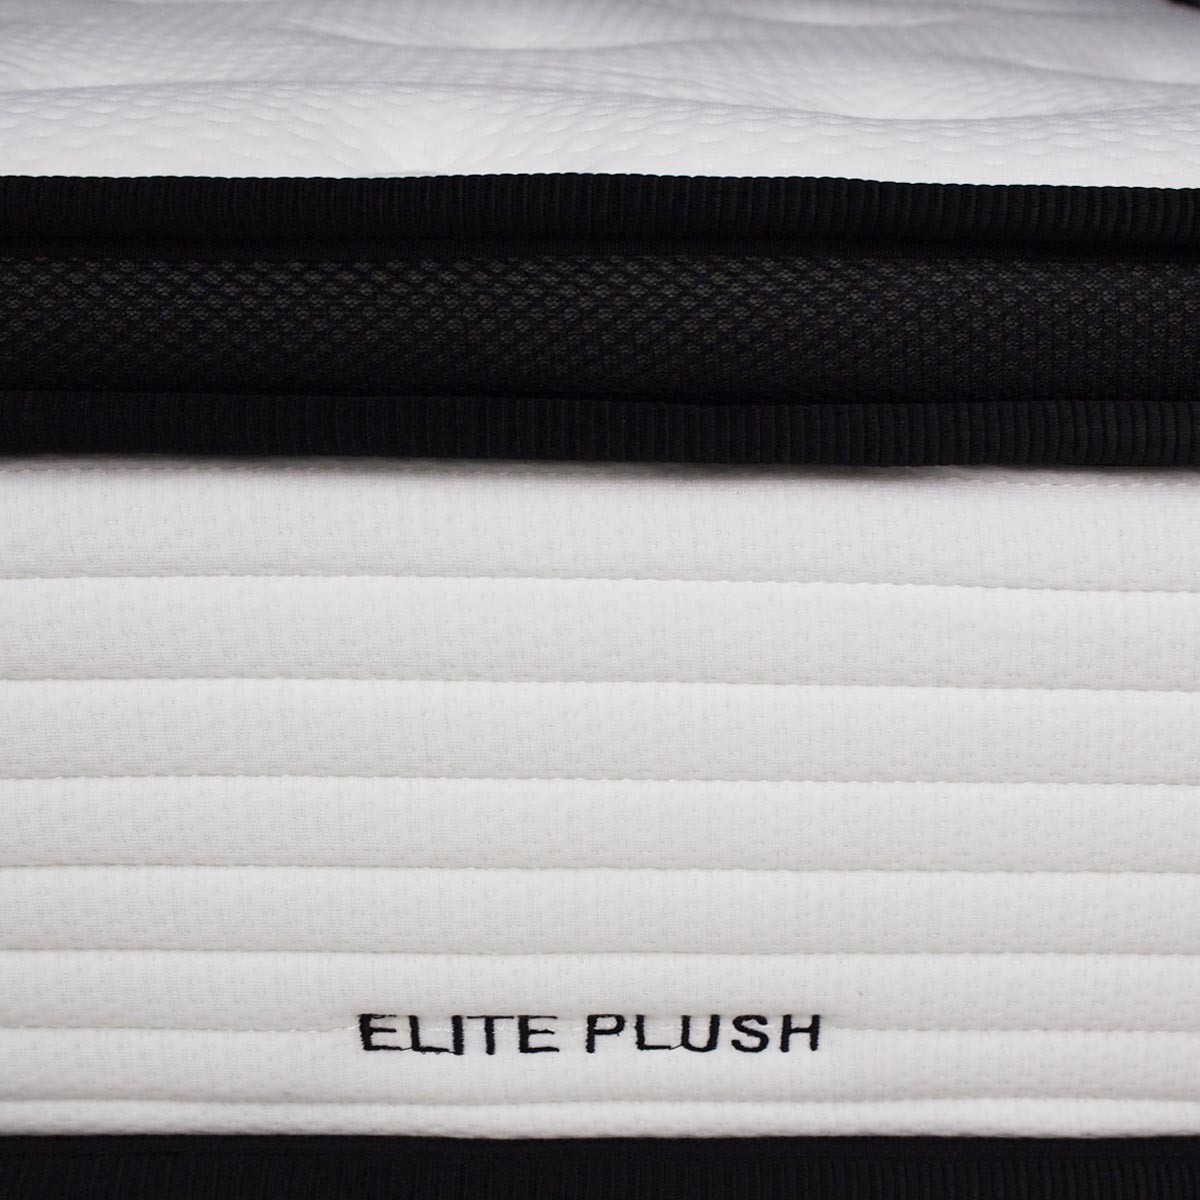 Mattresses Mattress Warehouse Clearance Outlet Elite Plush Pocketed Spring Queen Size Mattress by Sleep ...